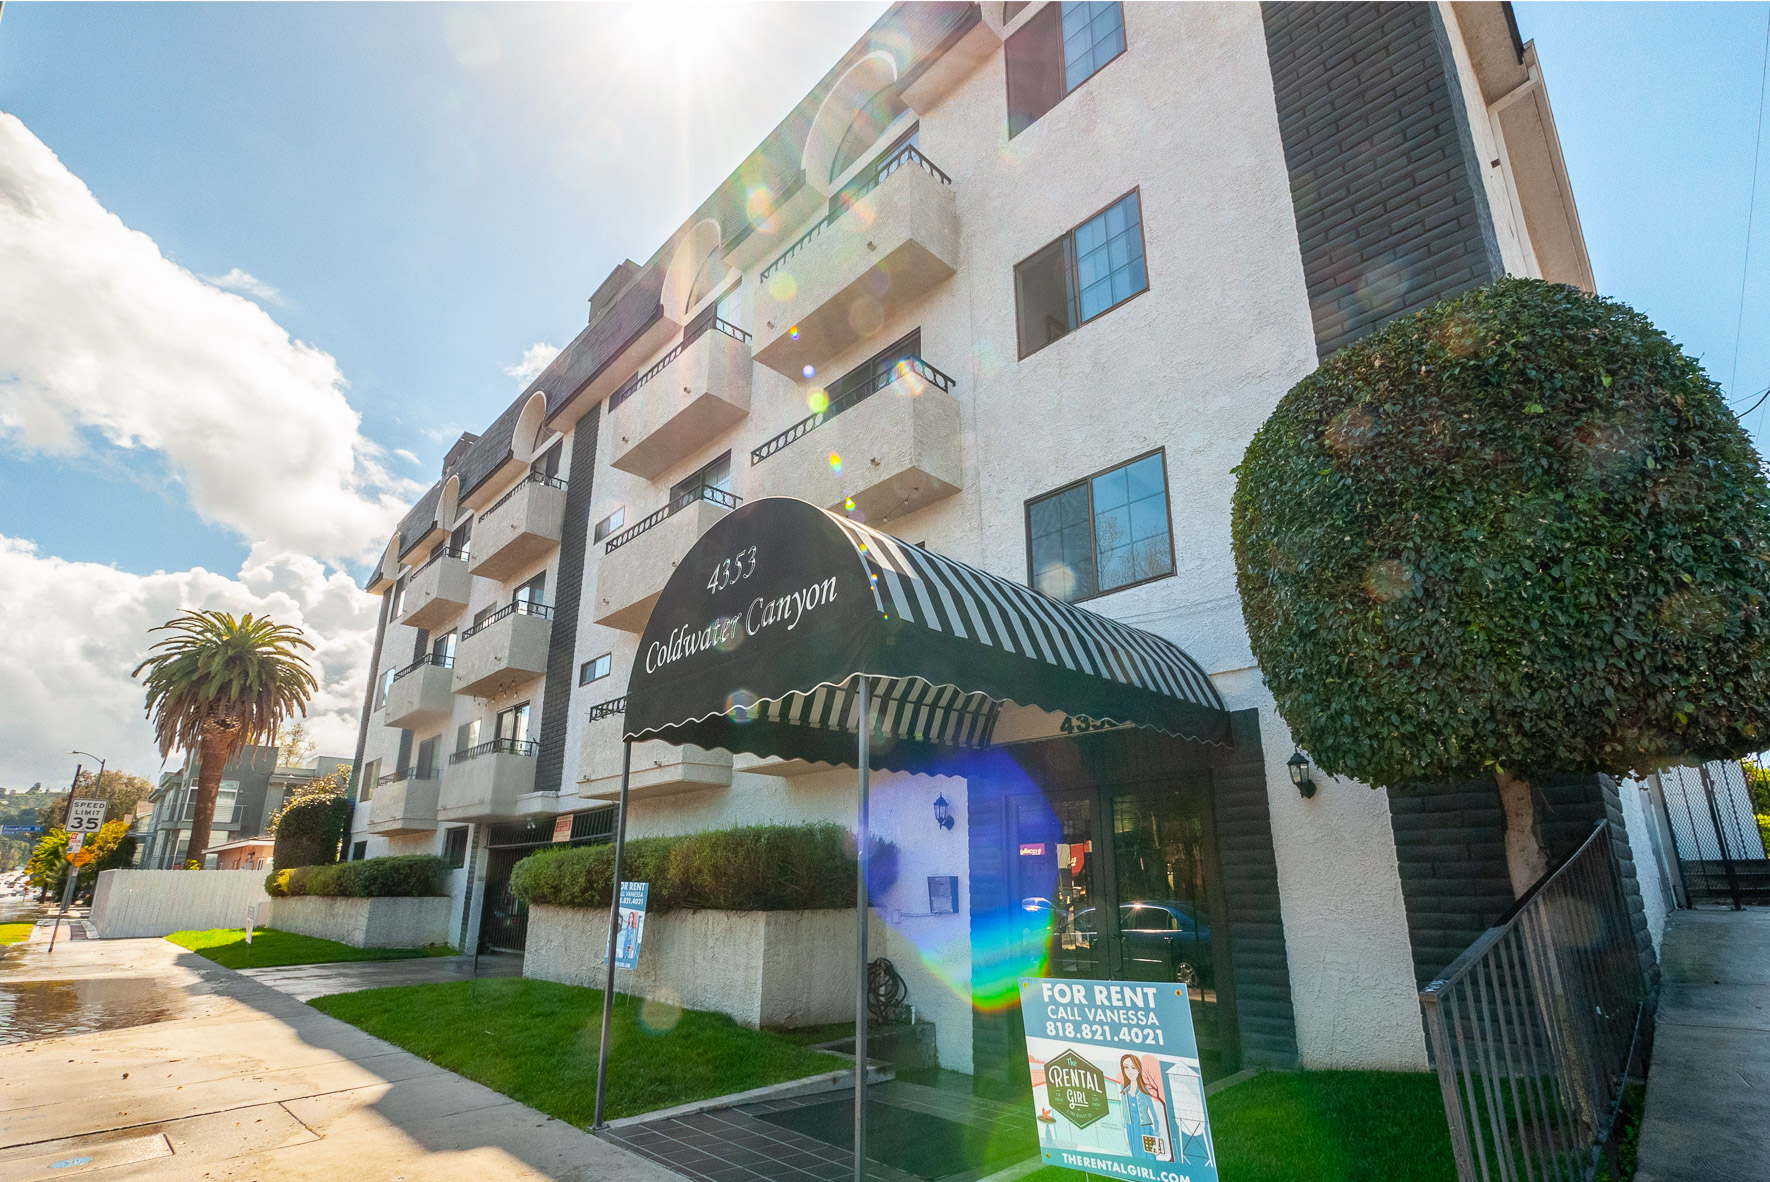 Prime Studio City Location! Grab your floaty, there's a pool, too!